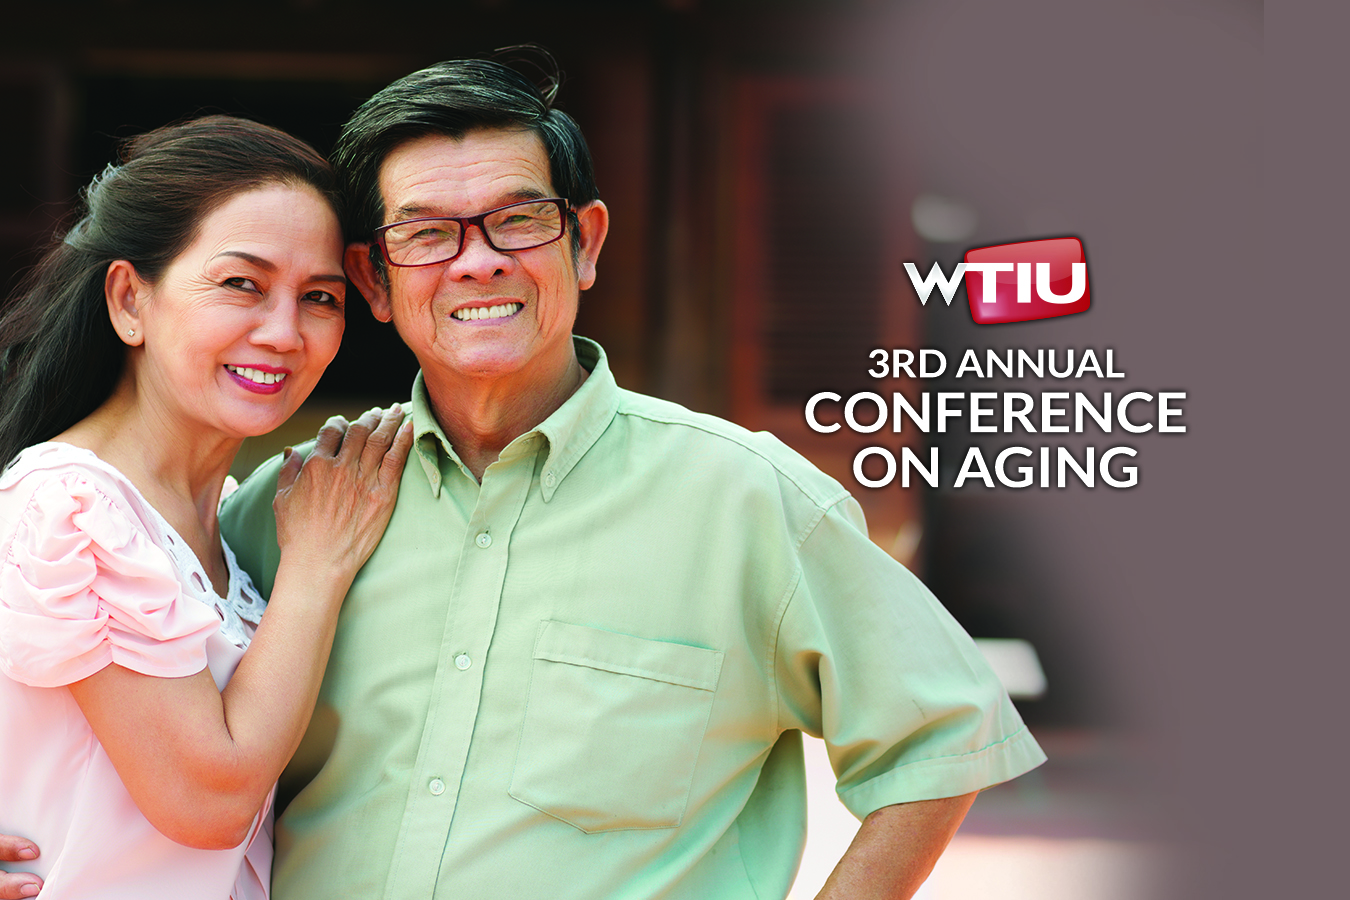 WTIU 3rd Annual Conference on Aging